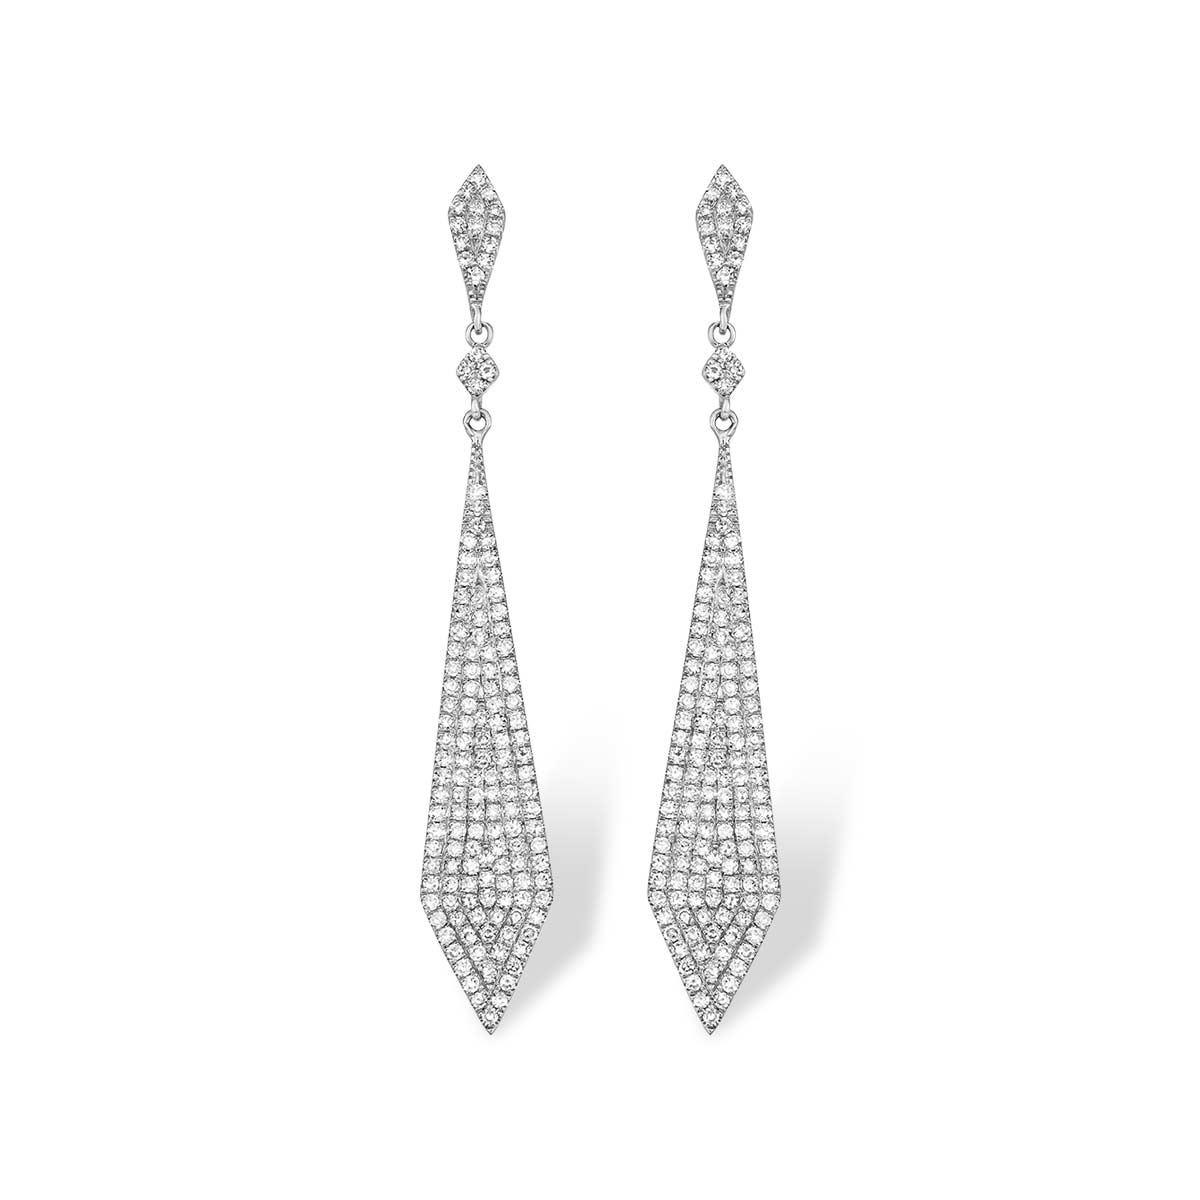 Shimmer Drop Earrings - Serena Williams Jewelry